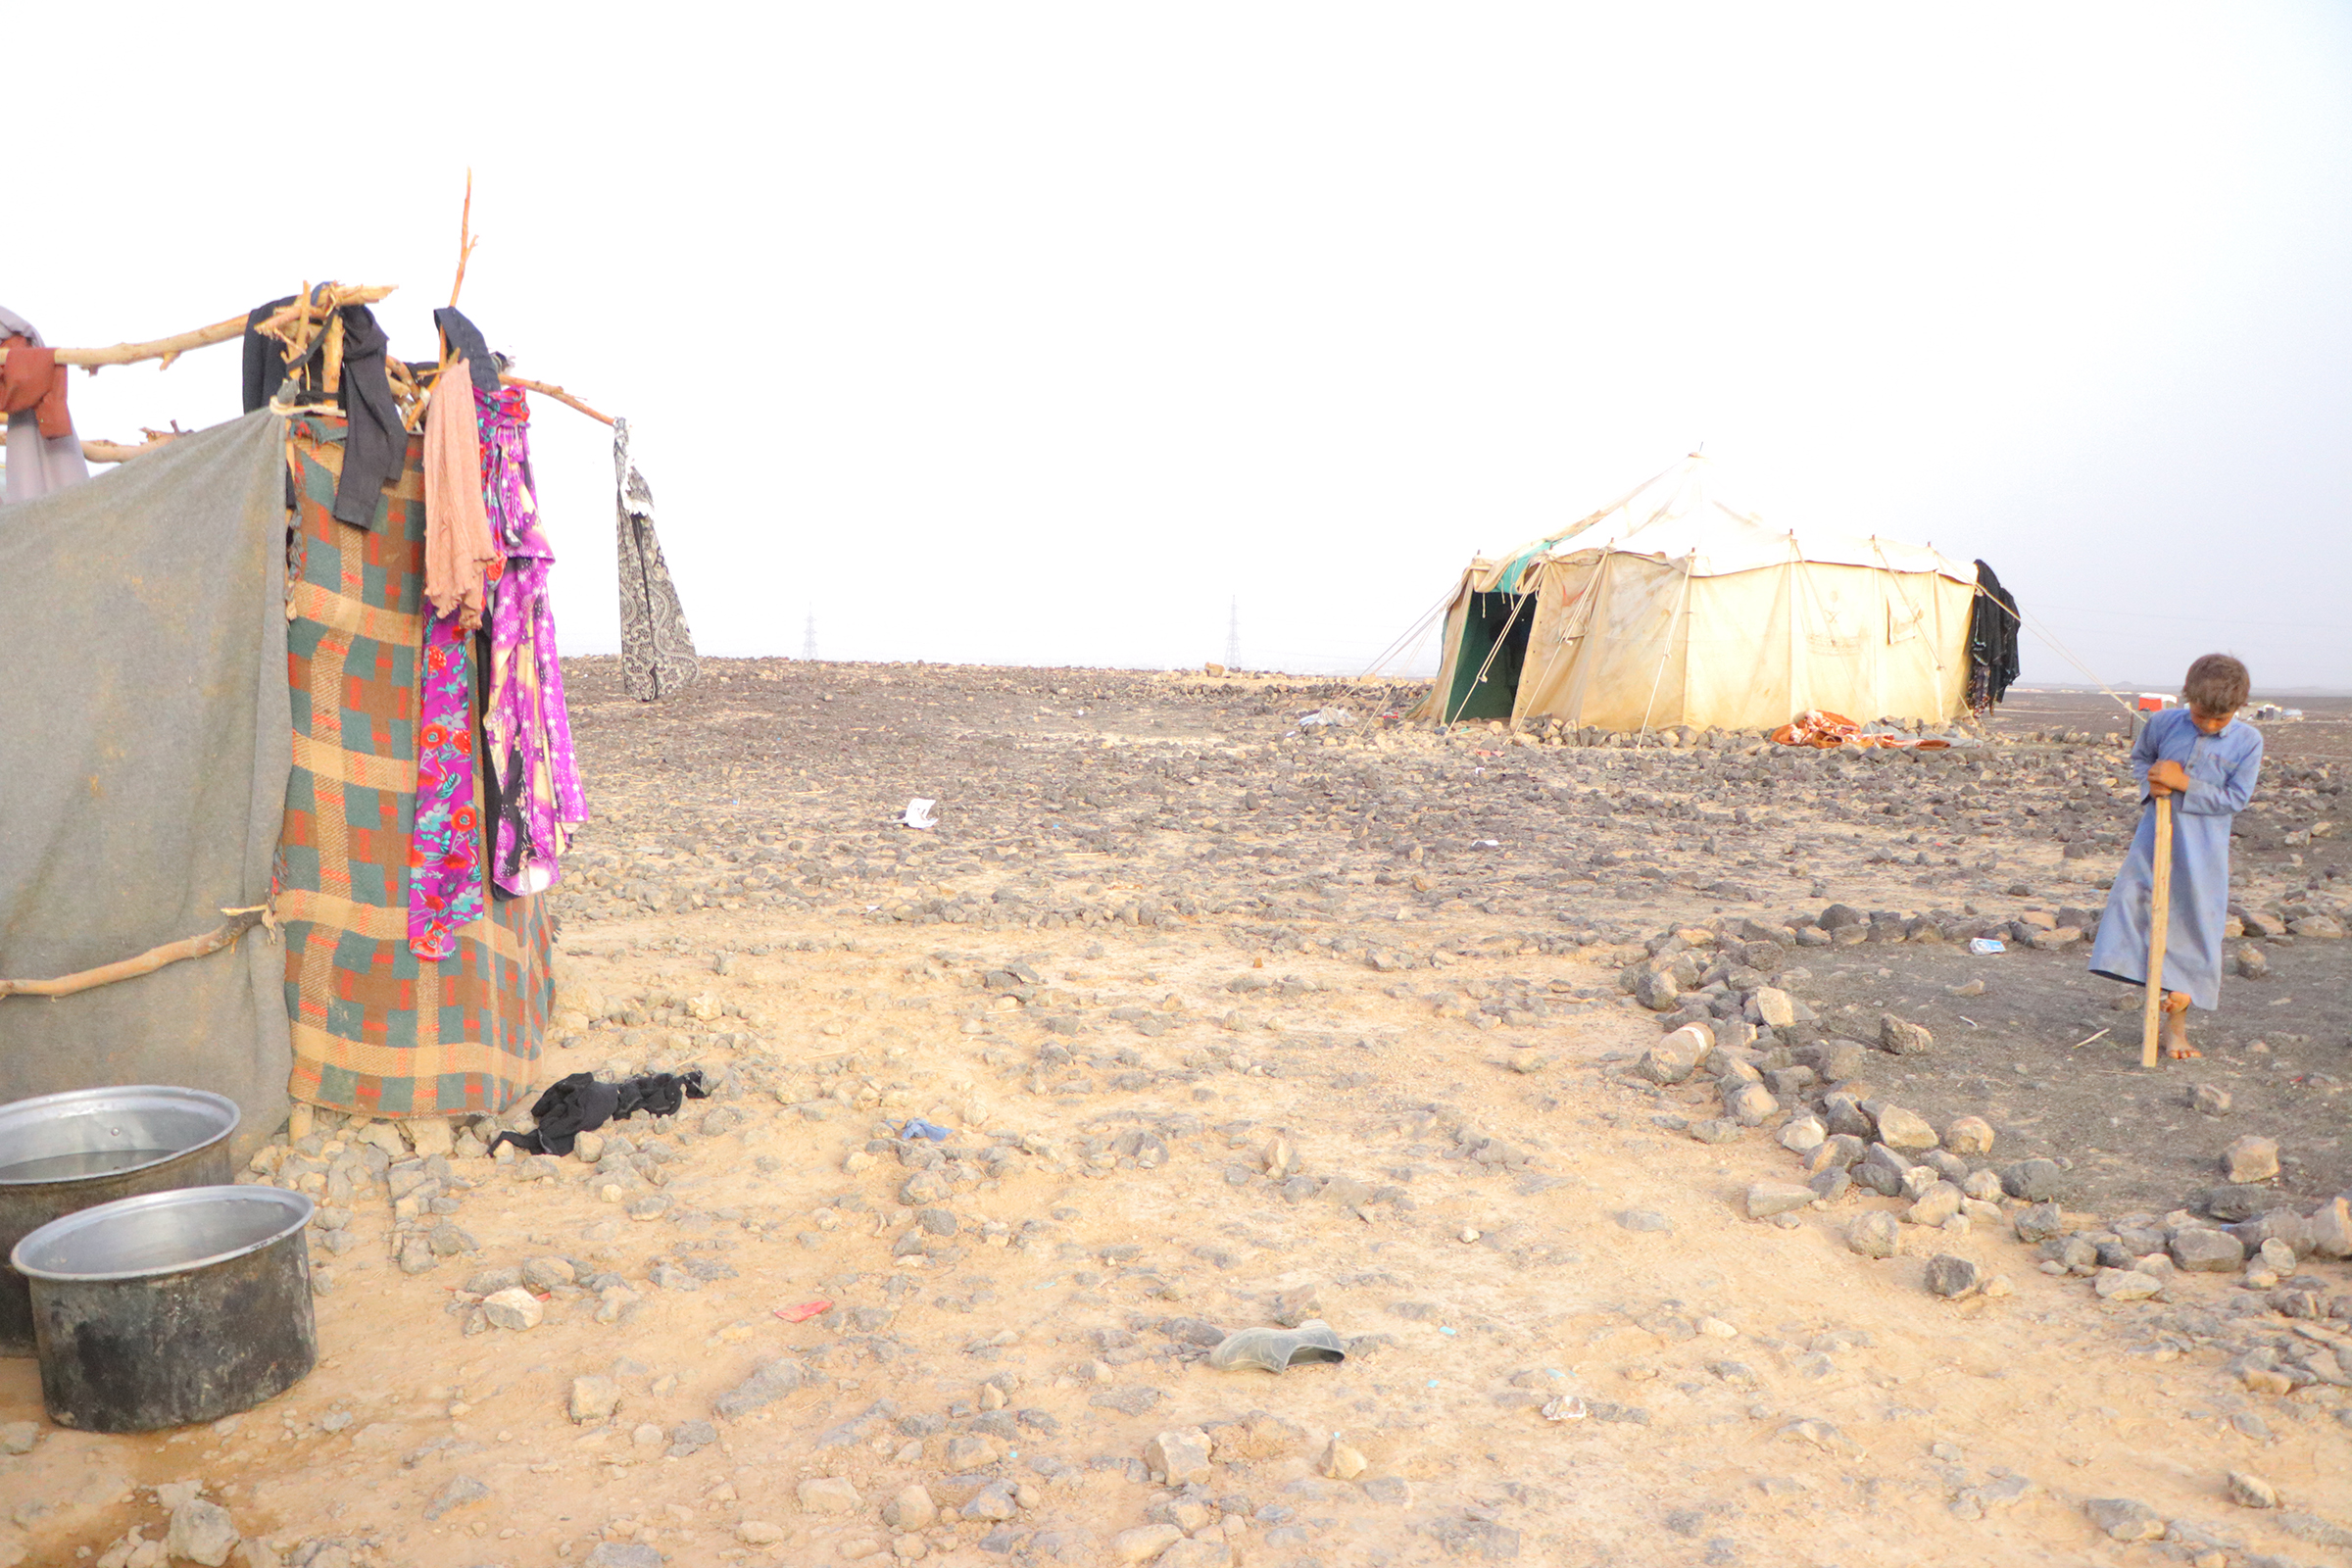 Al-Swaidah displacement camp in Yemen, though there is nothing to mark it as such: no running water, no toilets, no electricity. It is home for around 500 displaced families from Marib and Nihm.